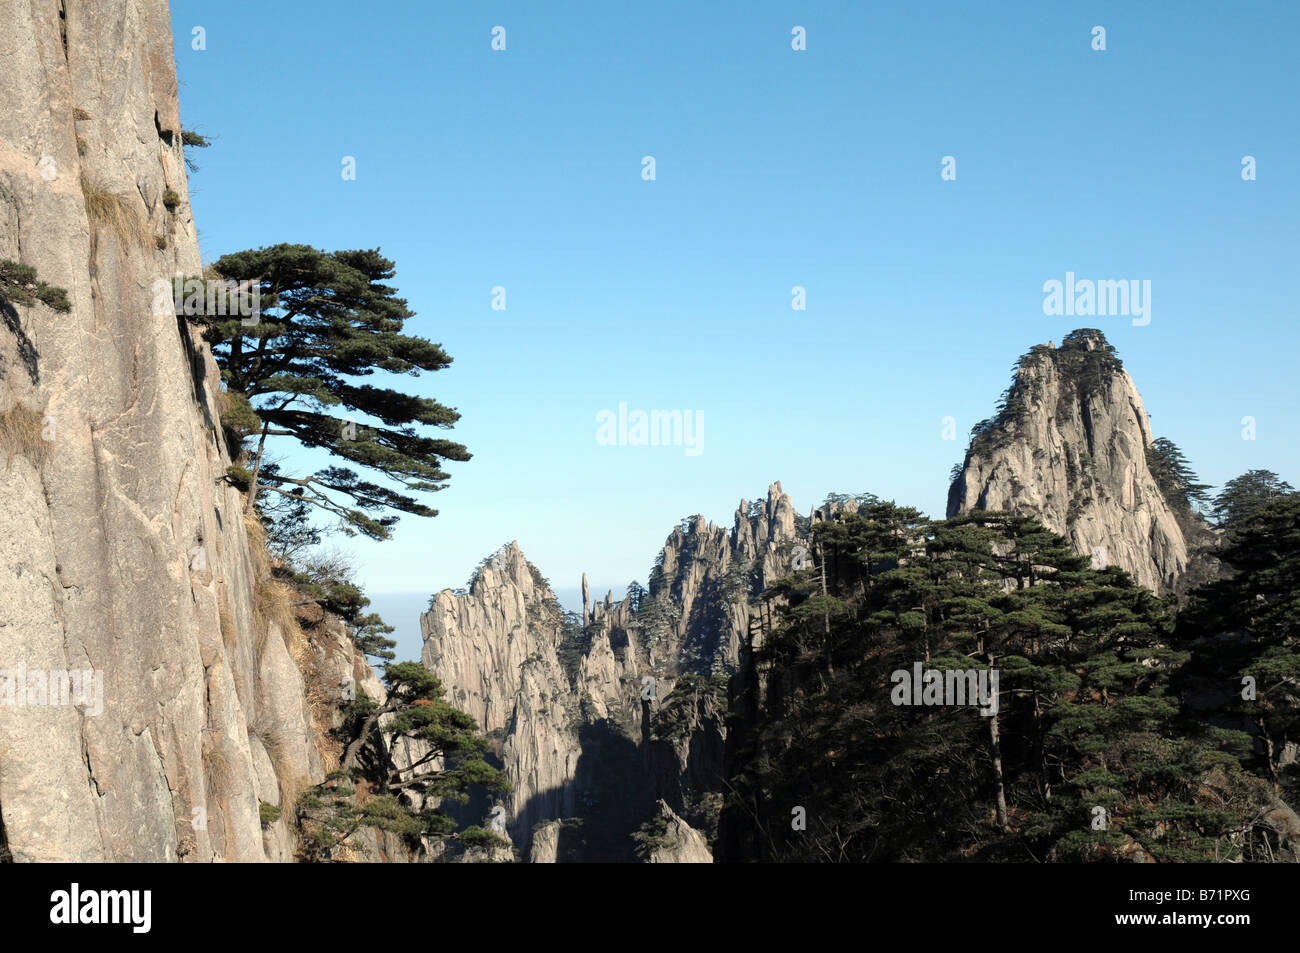 Pine tree growing out of granite mountainside, Huangshan, Yellow Mountain Area, China. - Stock Image